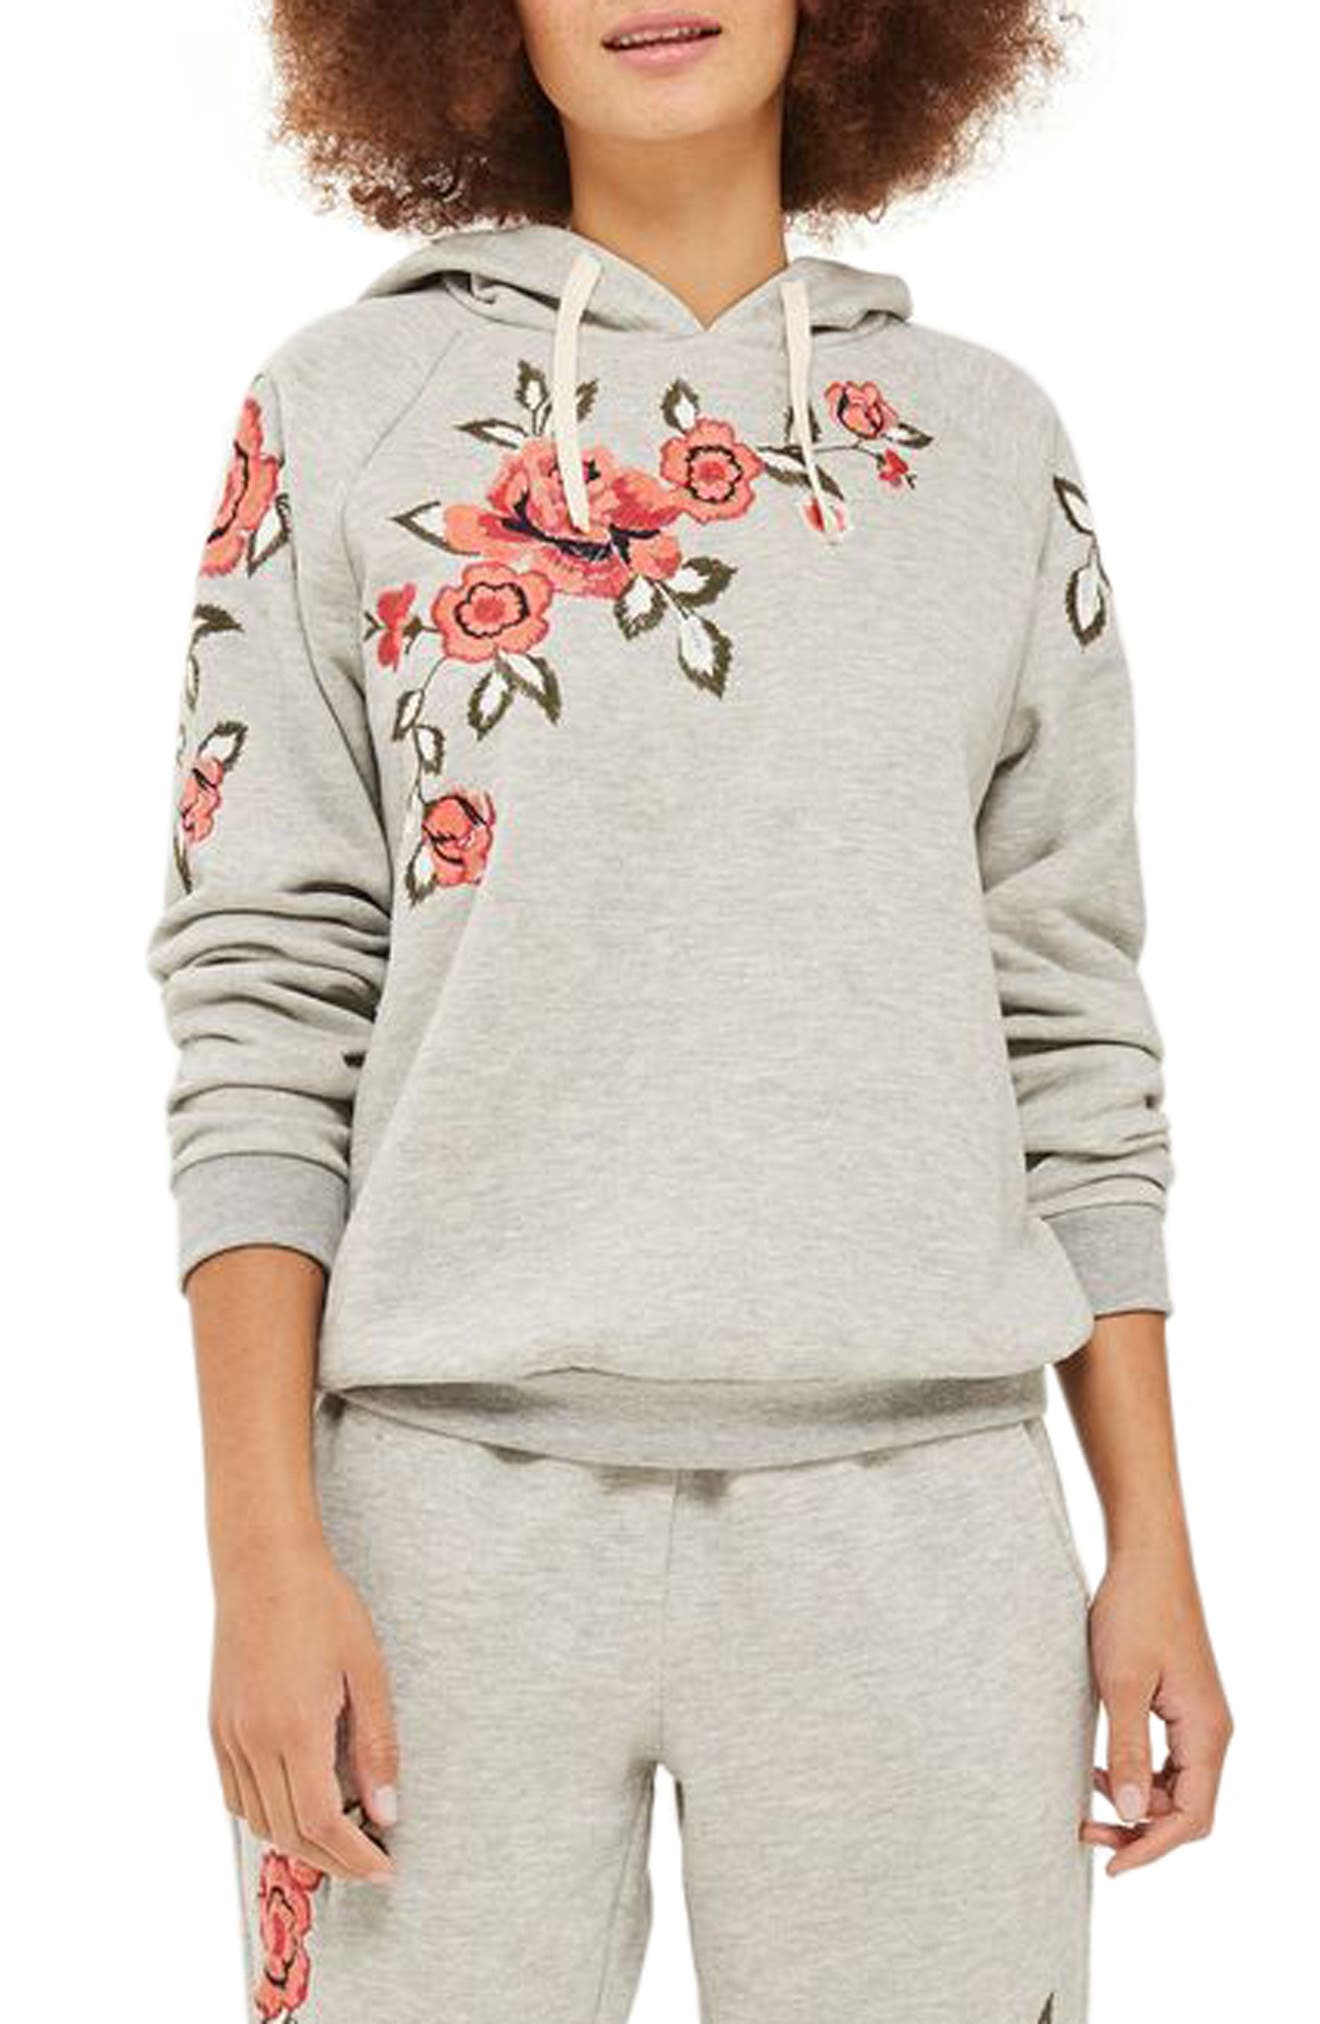 Floral Embroidered Hoodie,                             Main thumbnail 1, color,                             020